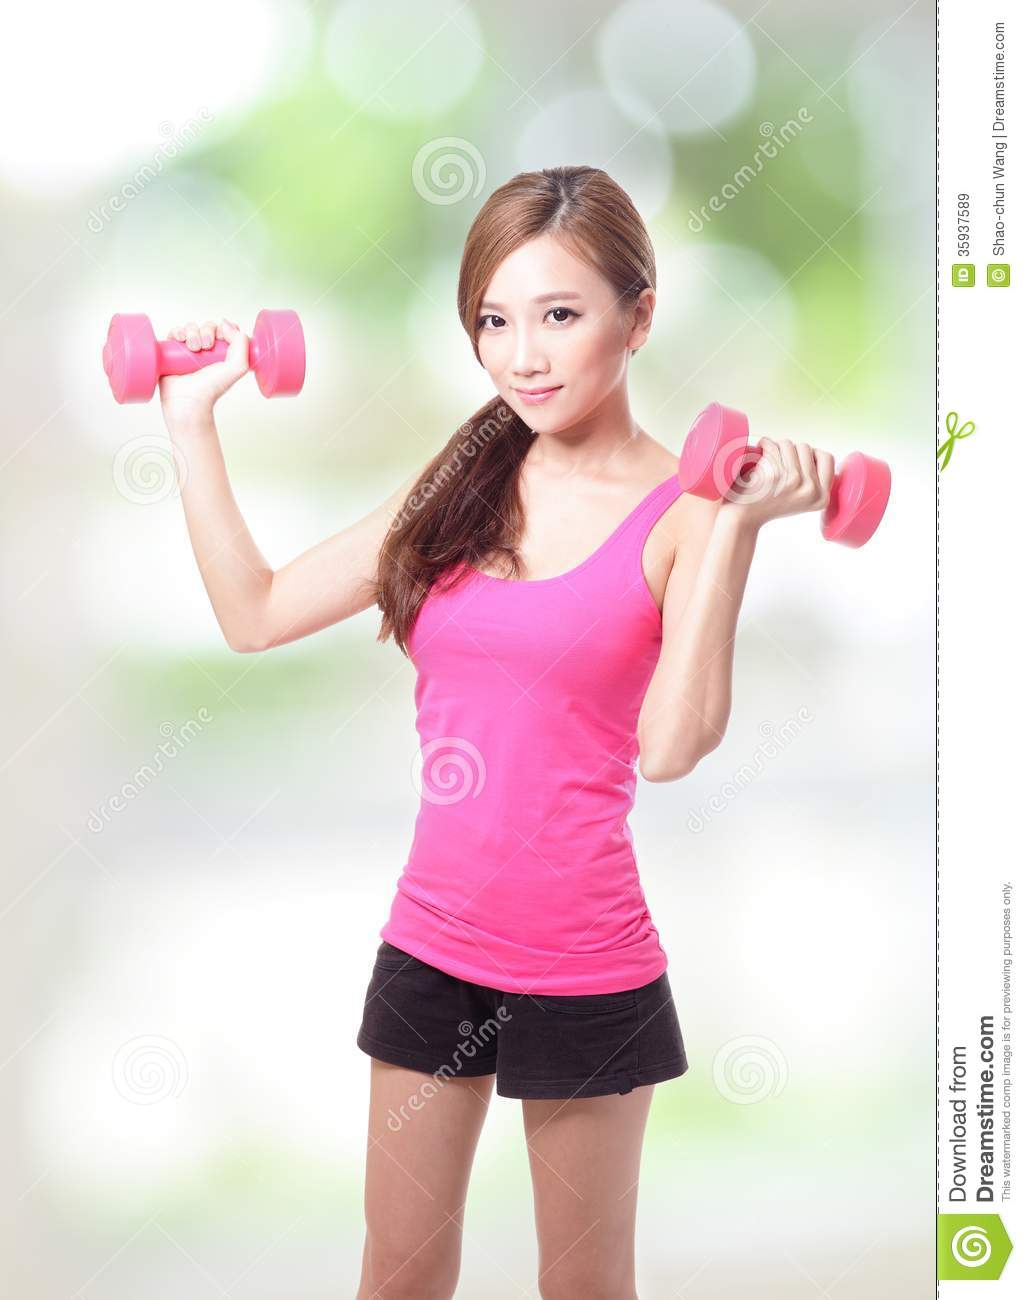 young sport girl with dumbbells stock image - image of background